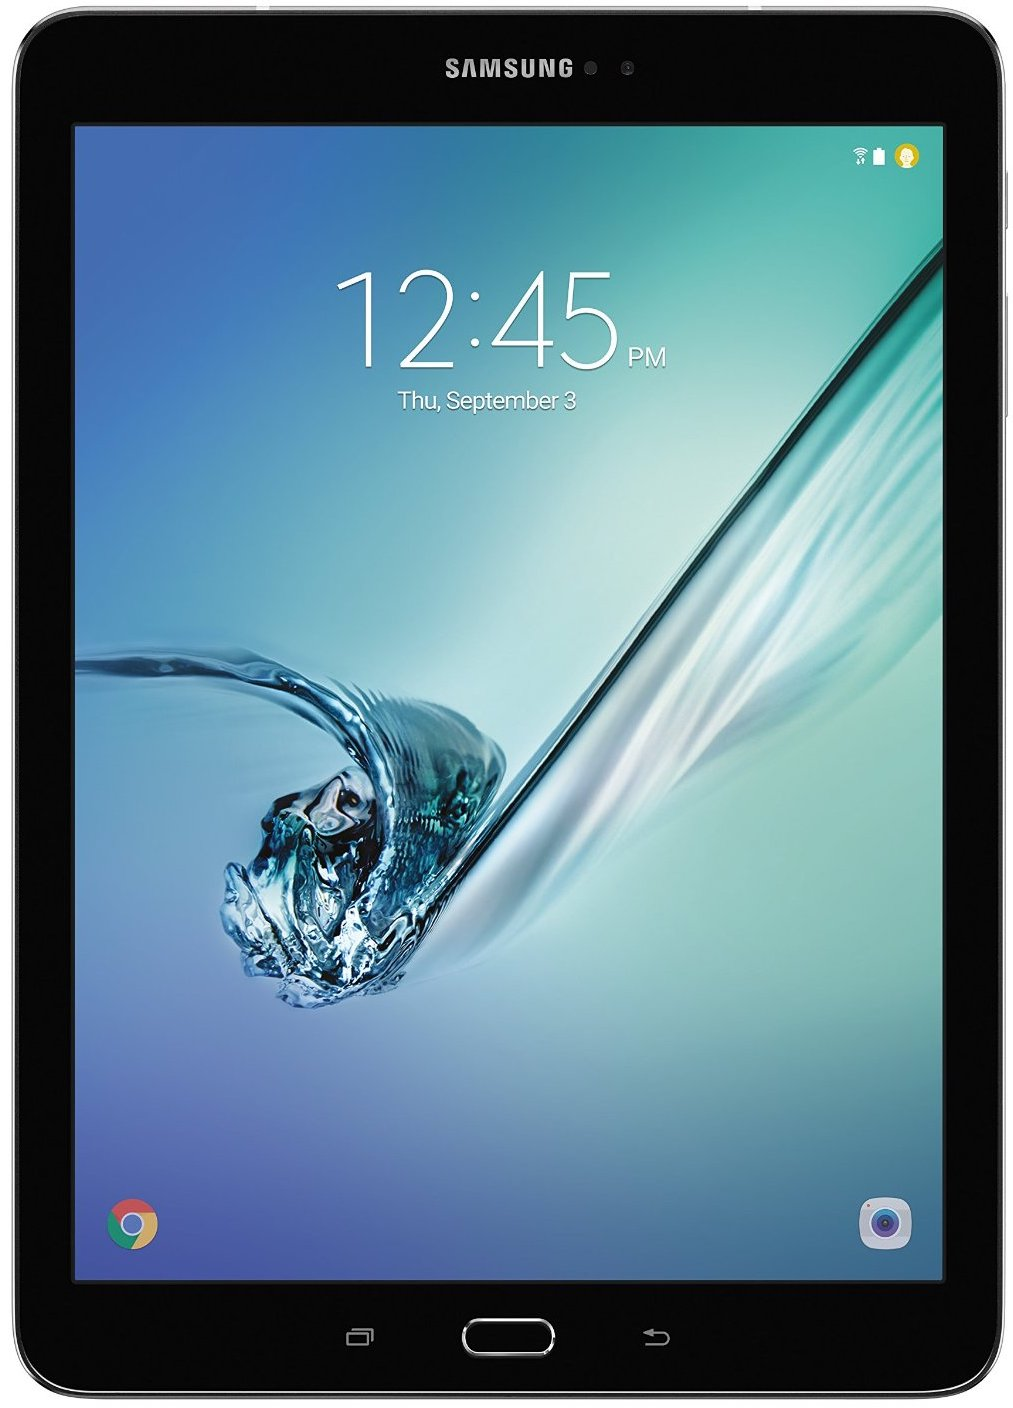 Offerta Samsung Galaxy Tab S2 9.7 VE 4G su TrovaUsati.it